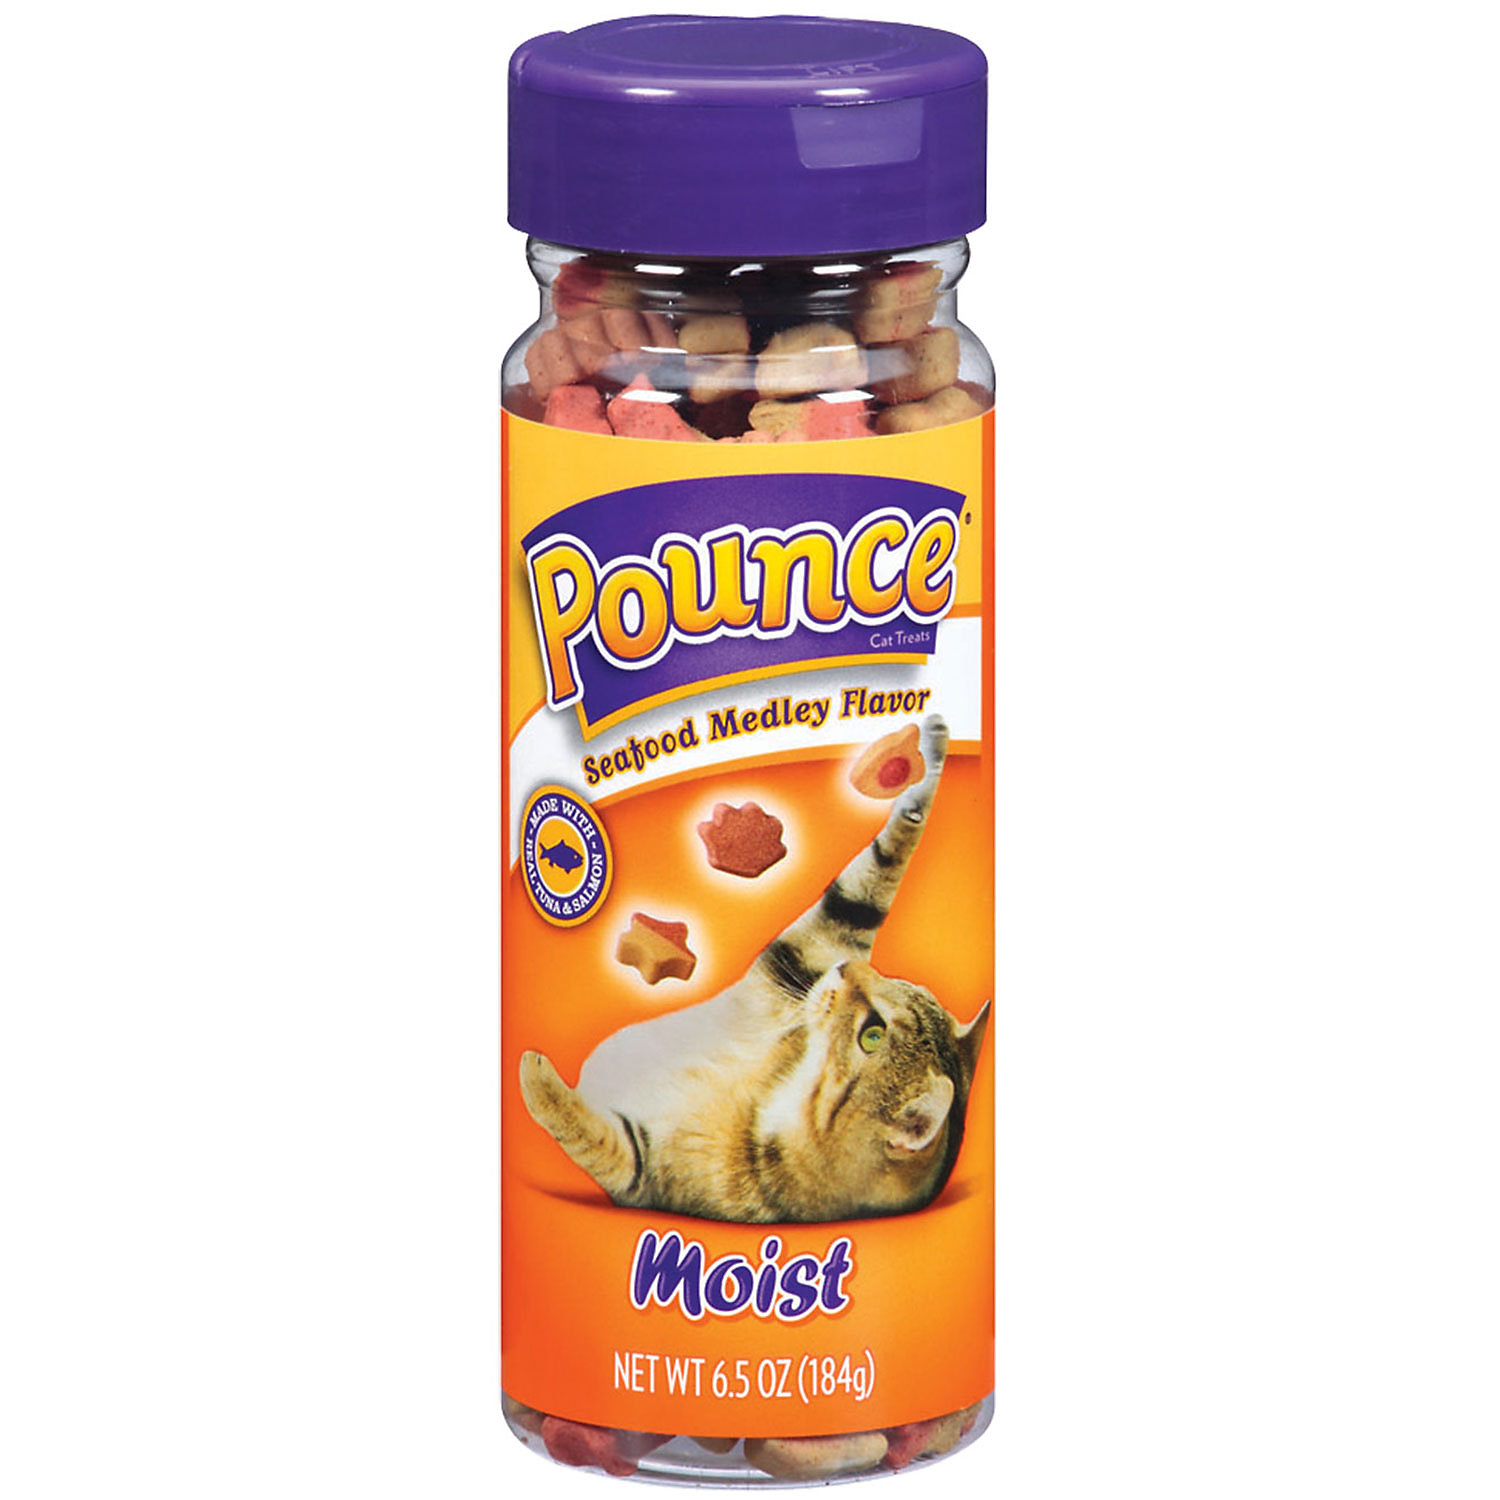 Pounce Seafood Medley Moist Cat Treats 6.5 Oz.